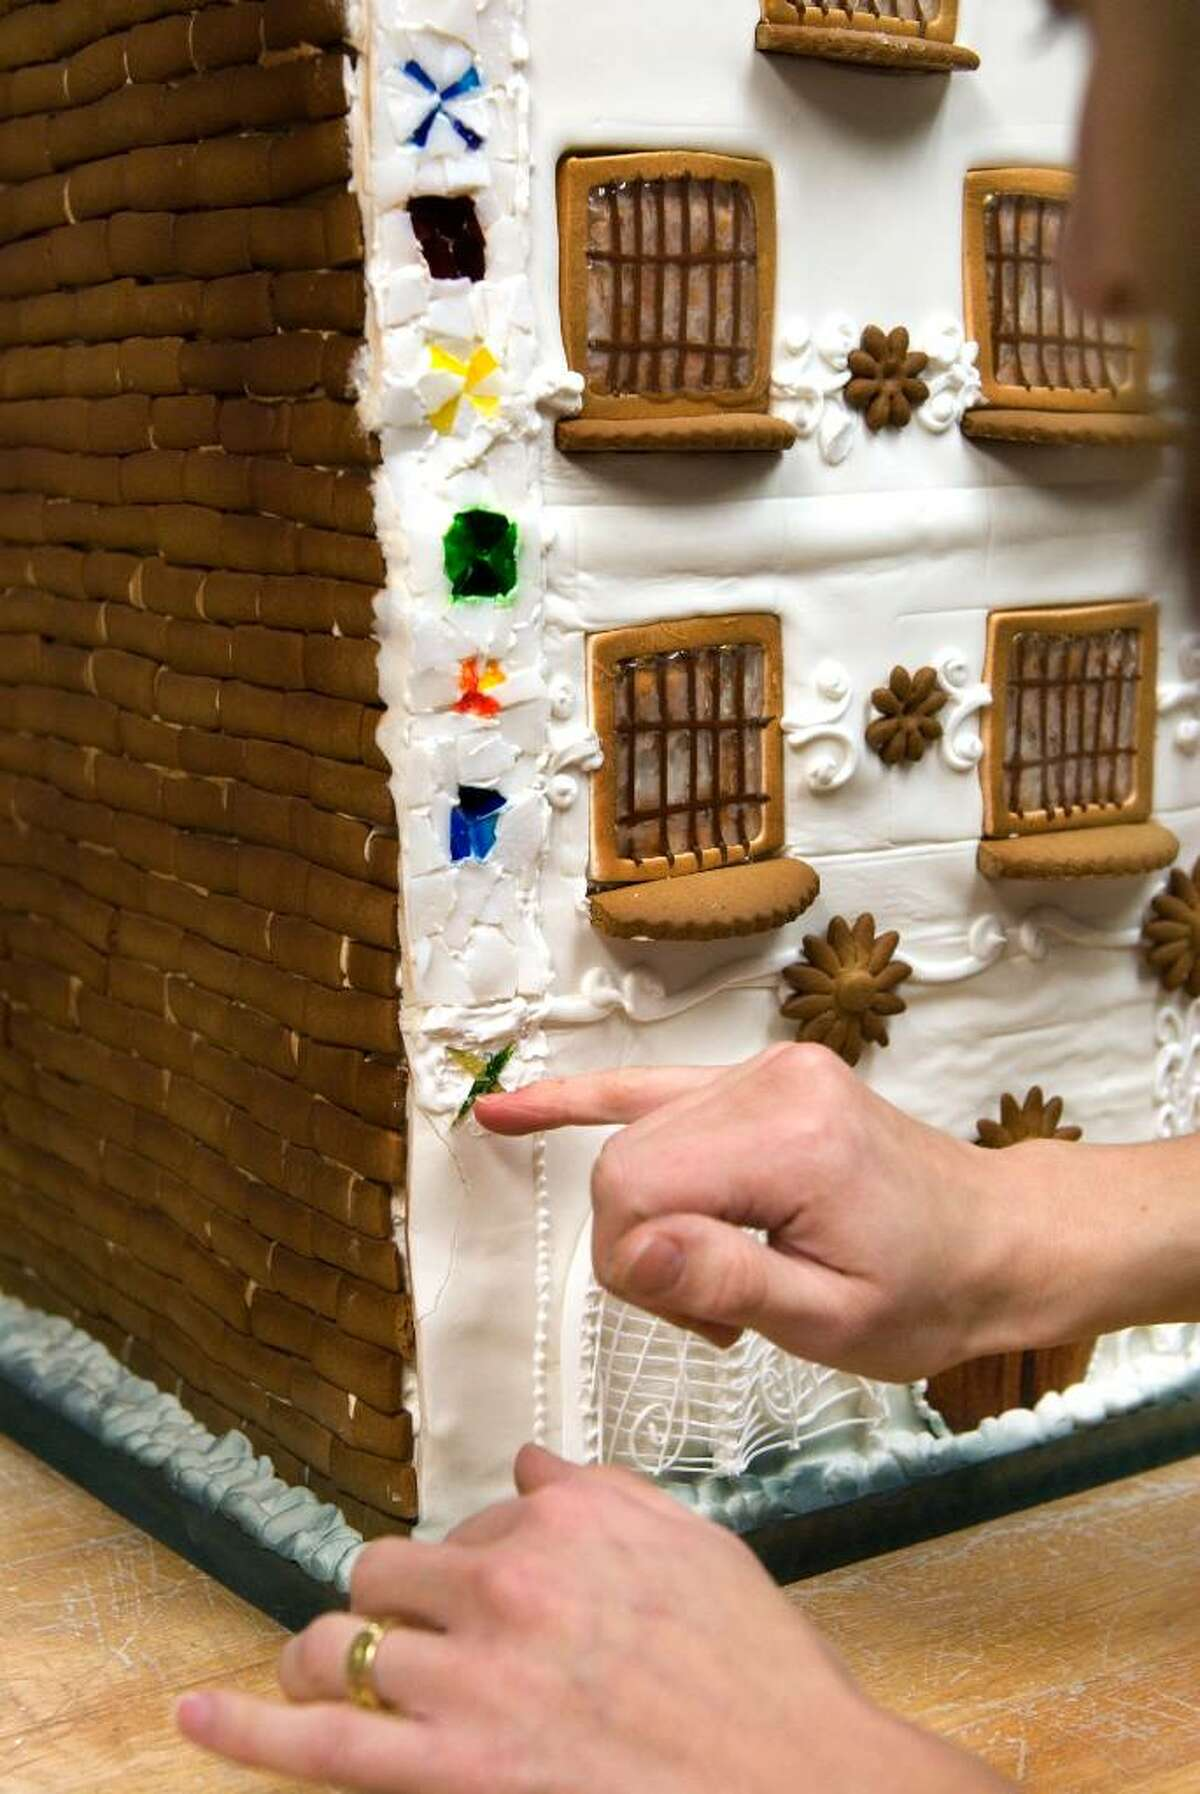 Rebecca Martin, owner of Sweet On You Bakery and Cafe in Stamford, Conn at the JCC, is one of several local chefs who have created gingerbread houses for the Stamford Museum & Nature Center's upcoming exhibit,